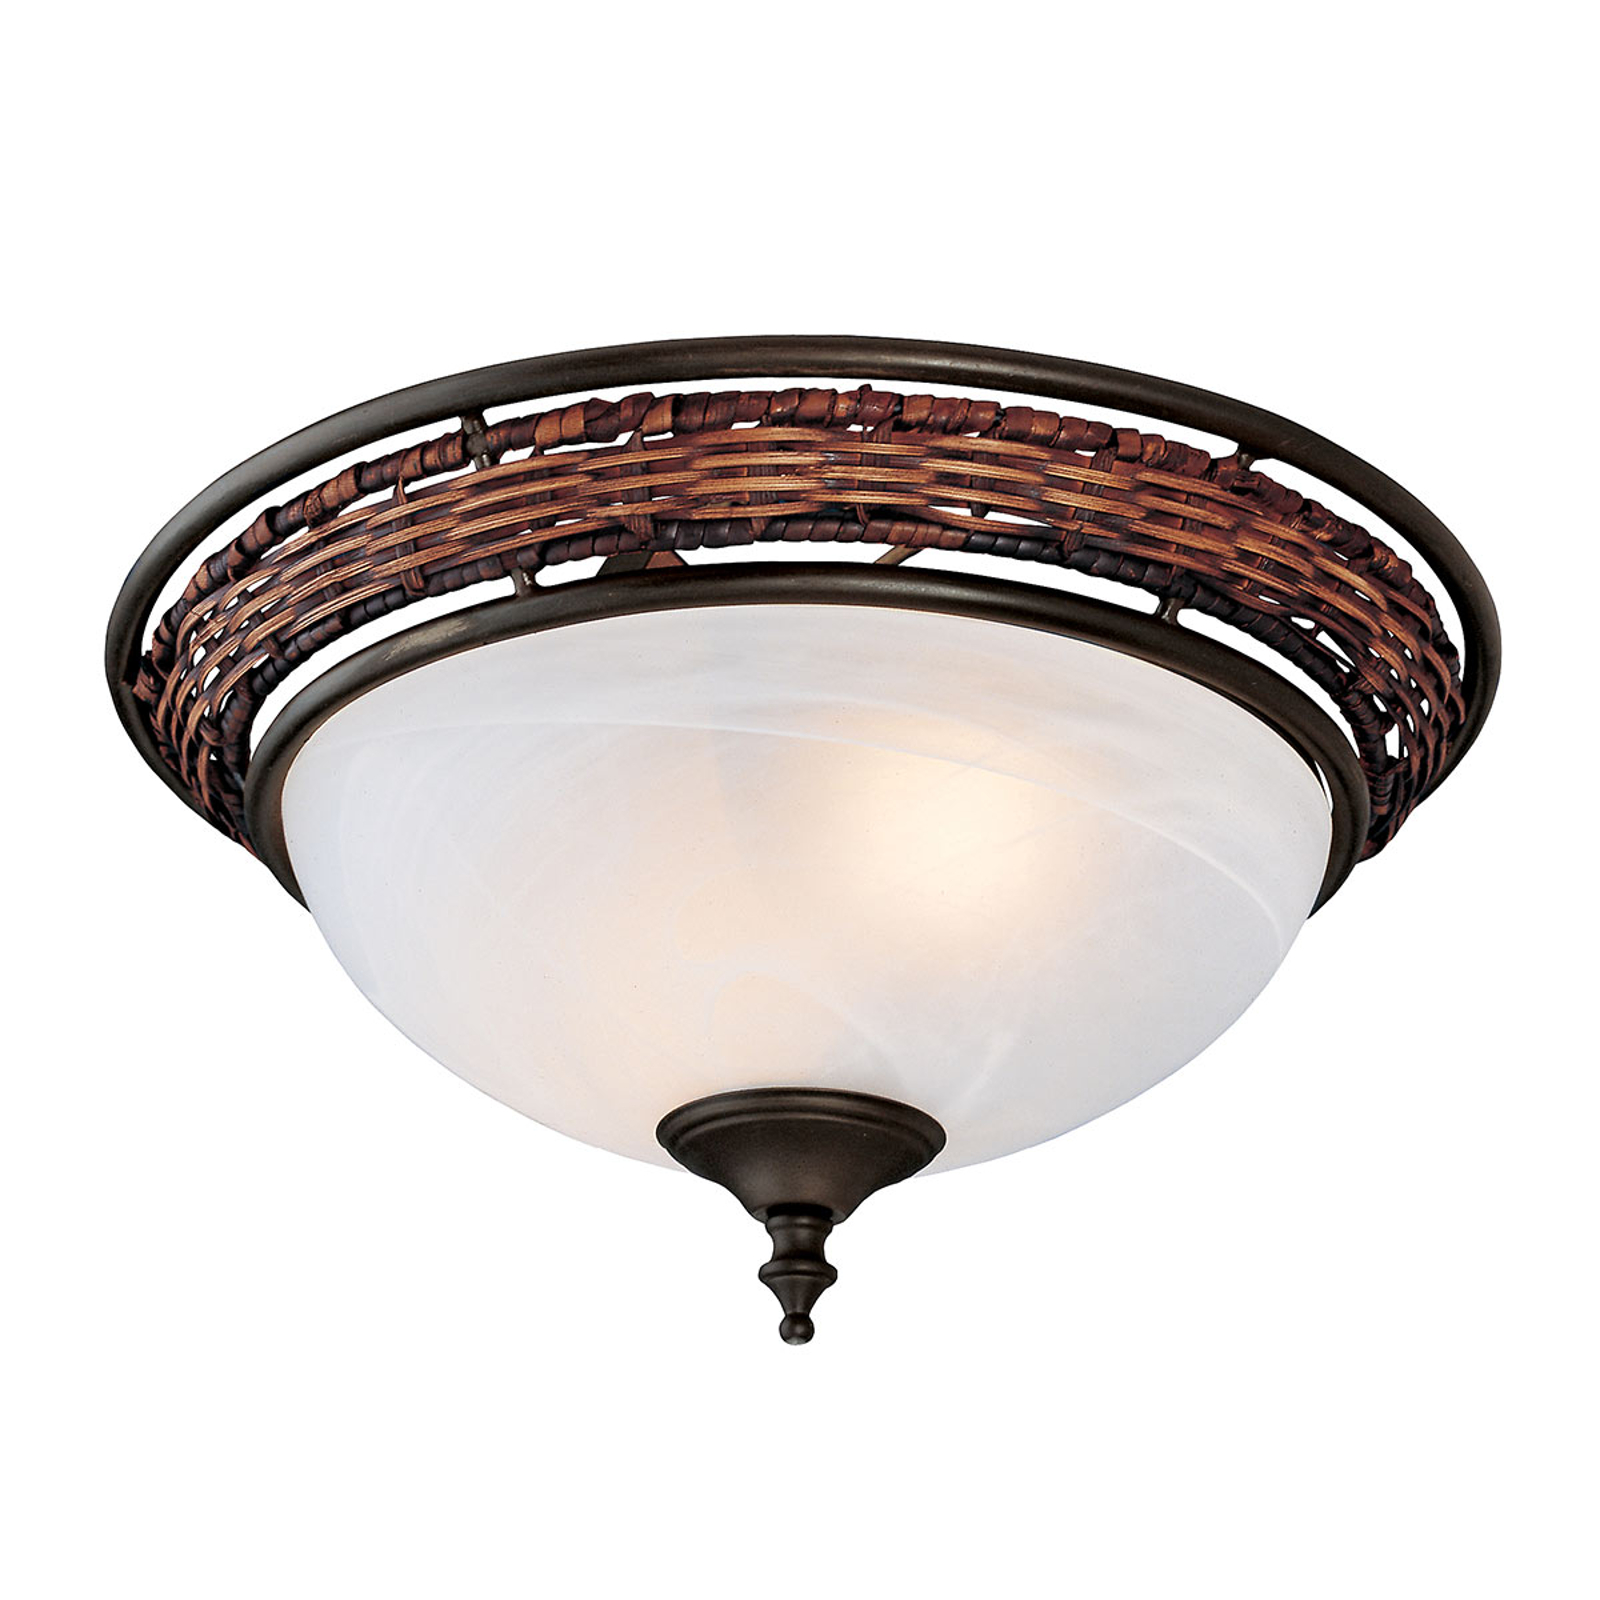 Hunter Wicker Bowl Anbaulampe für Deckenventilator